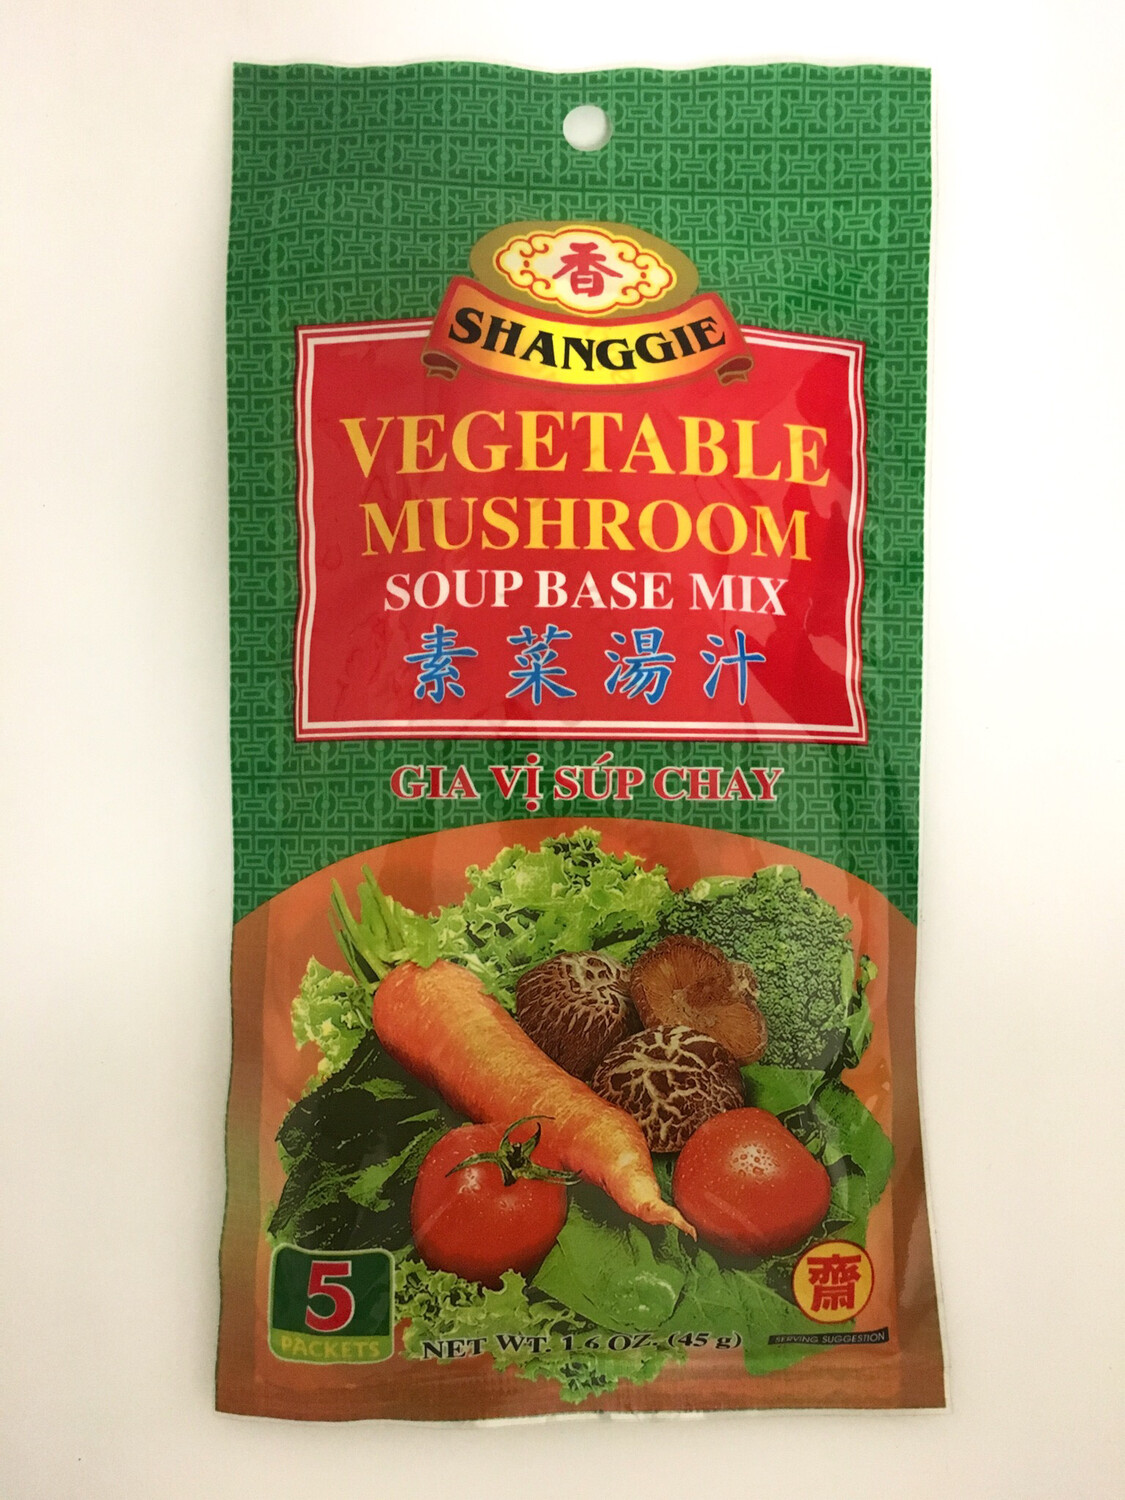 SHANGGIE VEGTABLE MUSHROOM SOUP BASE MIX 48X45G